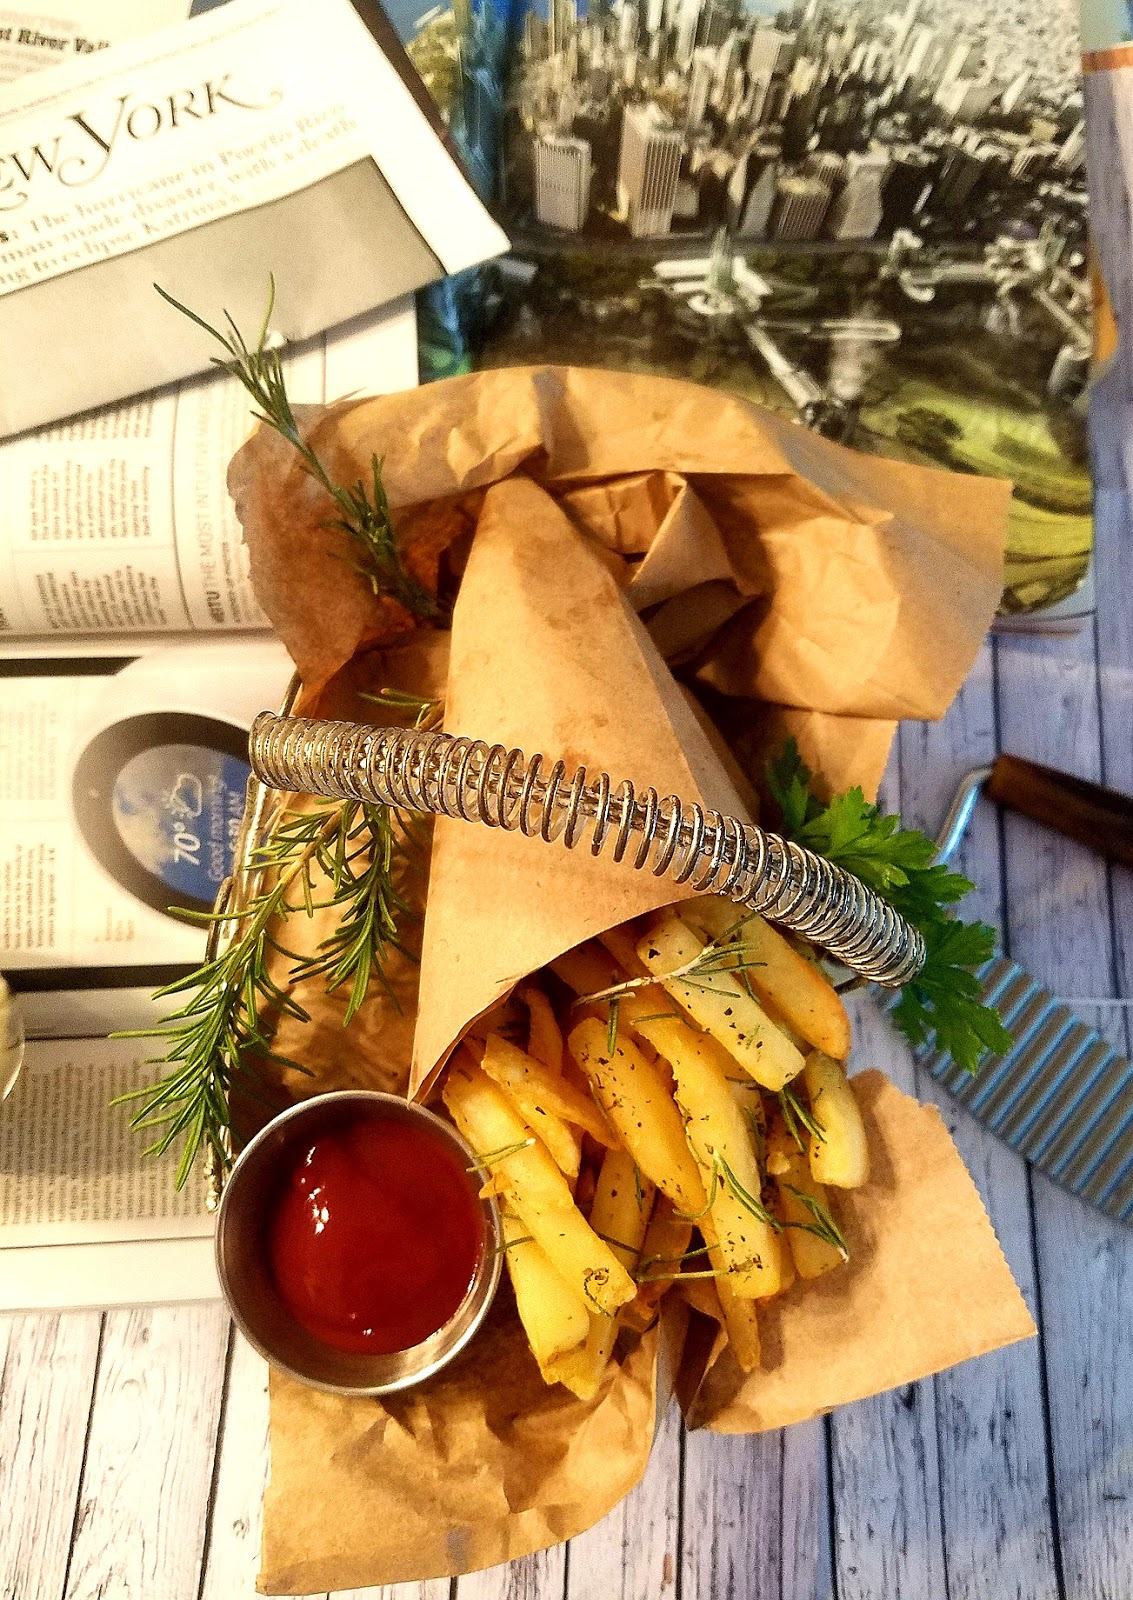 Italian  French Fries seasoned with herbs spices in a basket